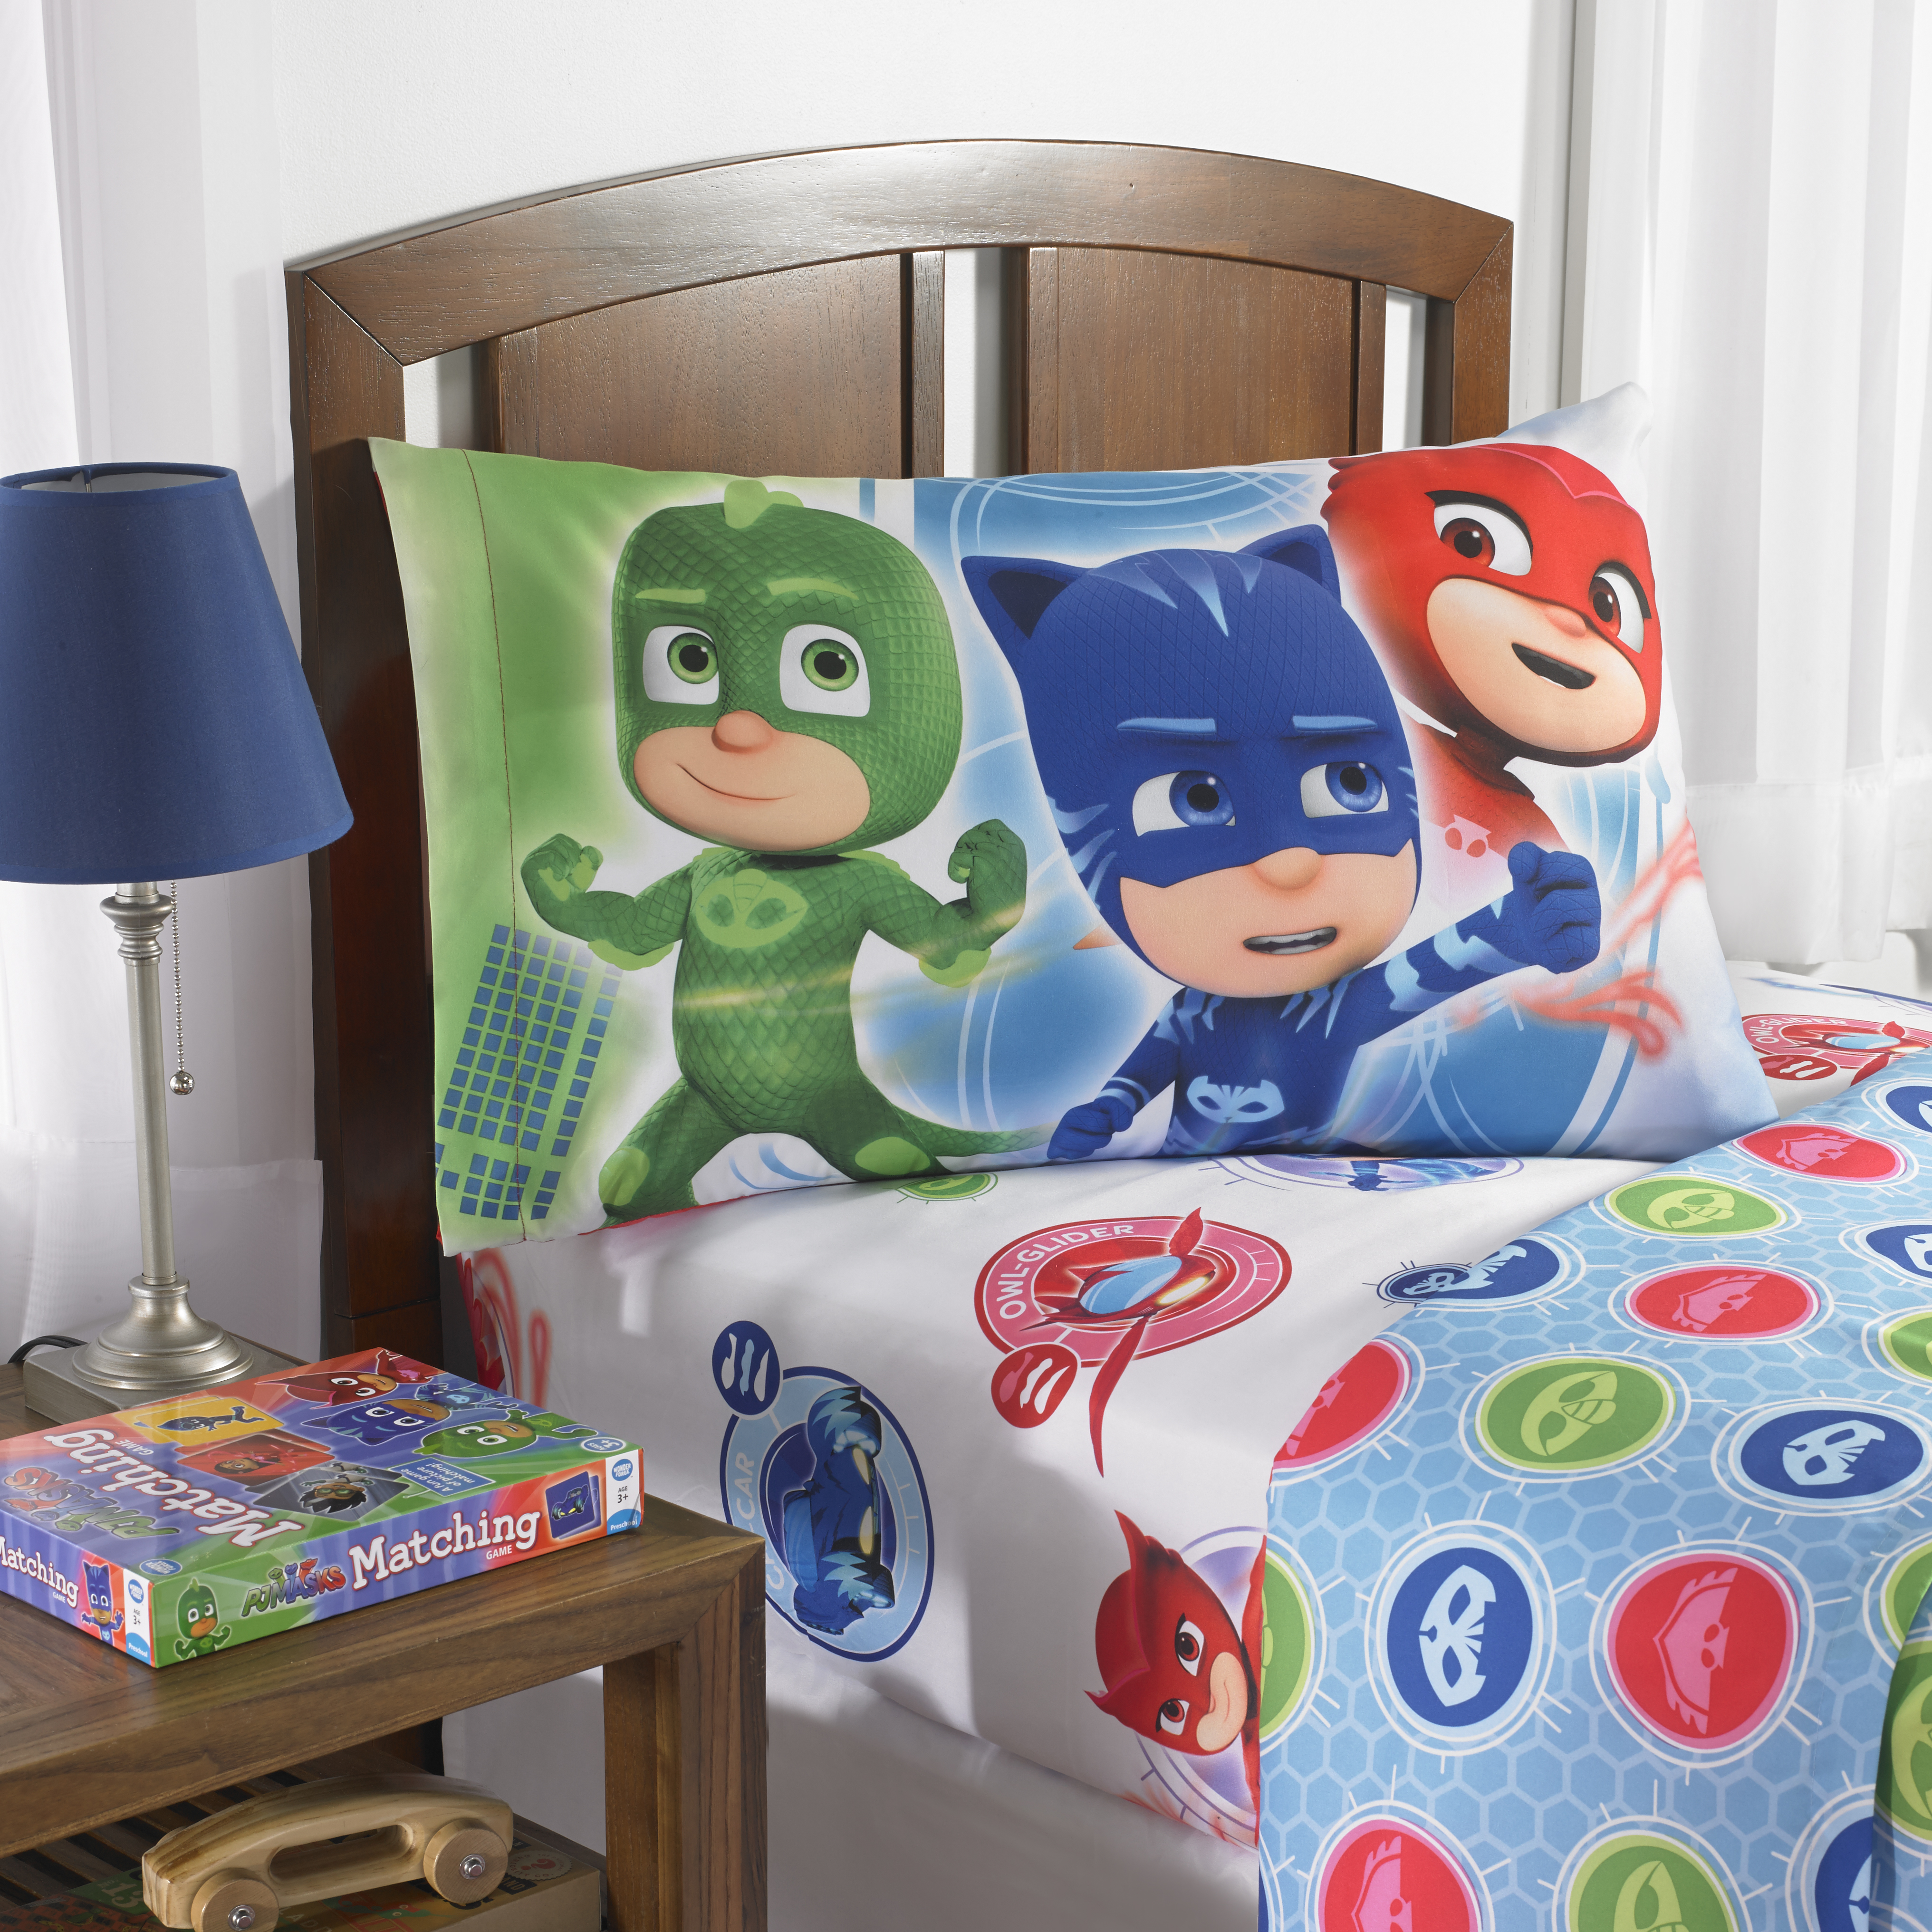 Pj Masks Room Decor 2488441 Hd Wallpaper Backgrounds Download